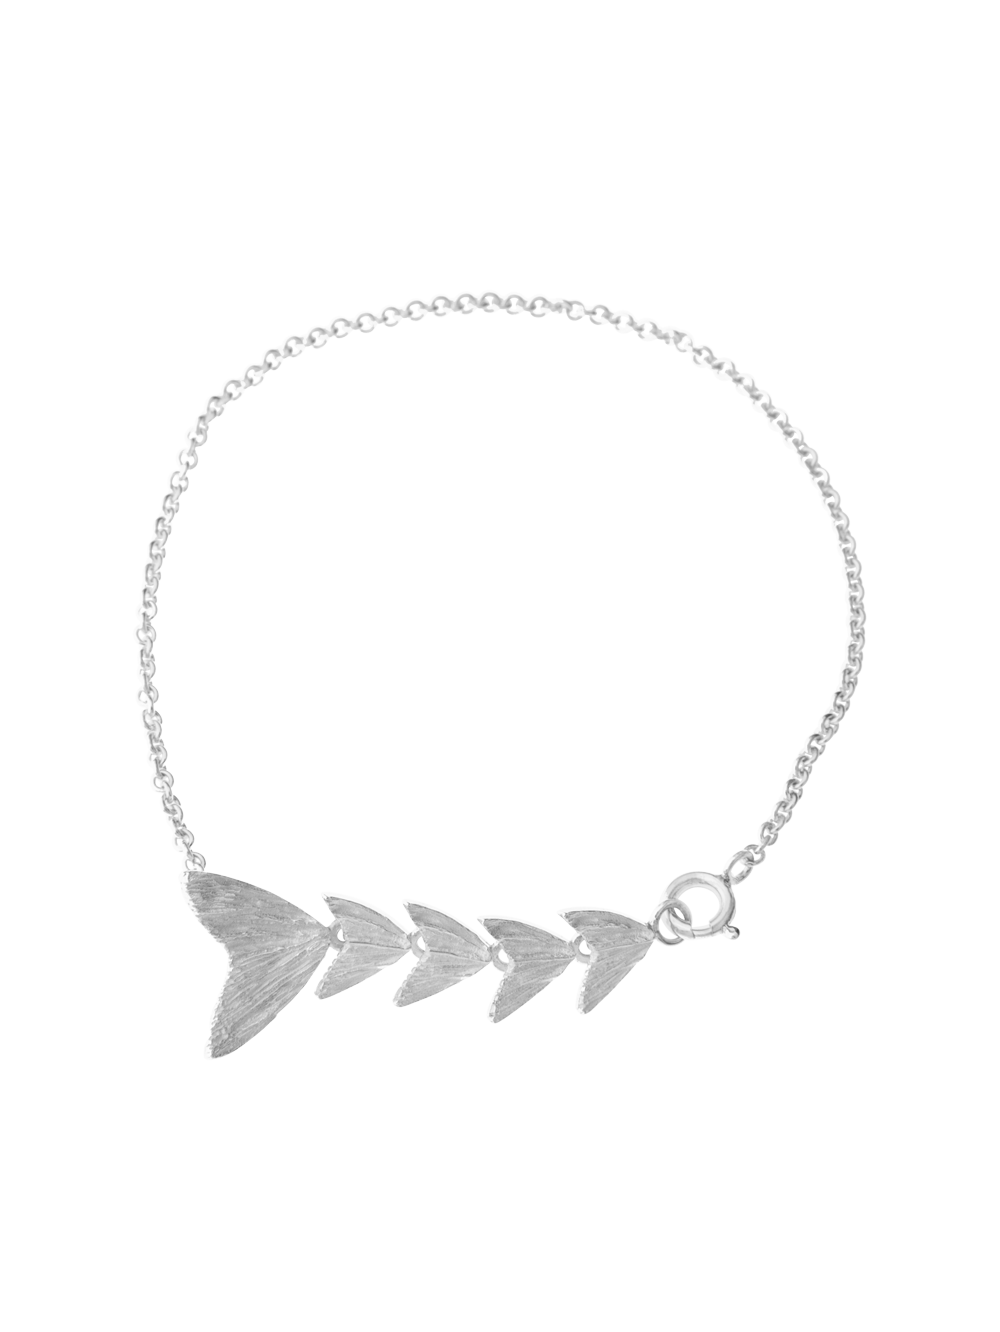 Silver Fish Tail Bracelet - Silver Statement Jewellery